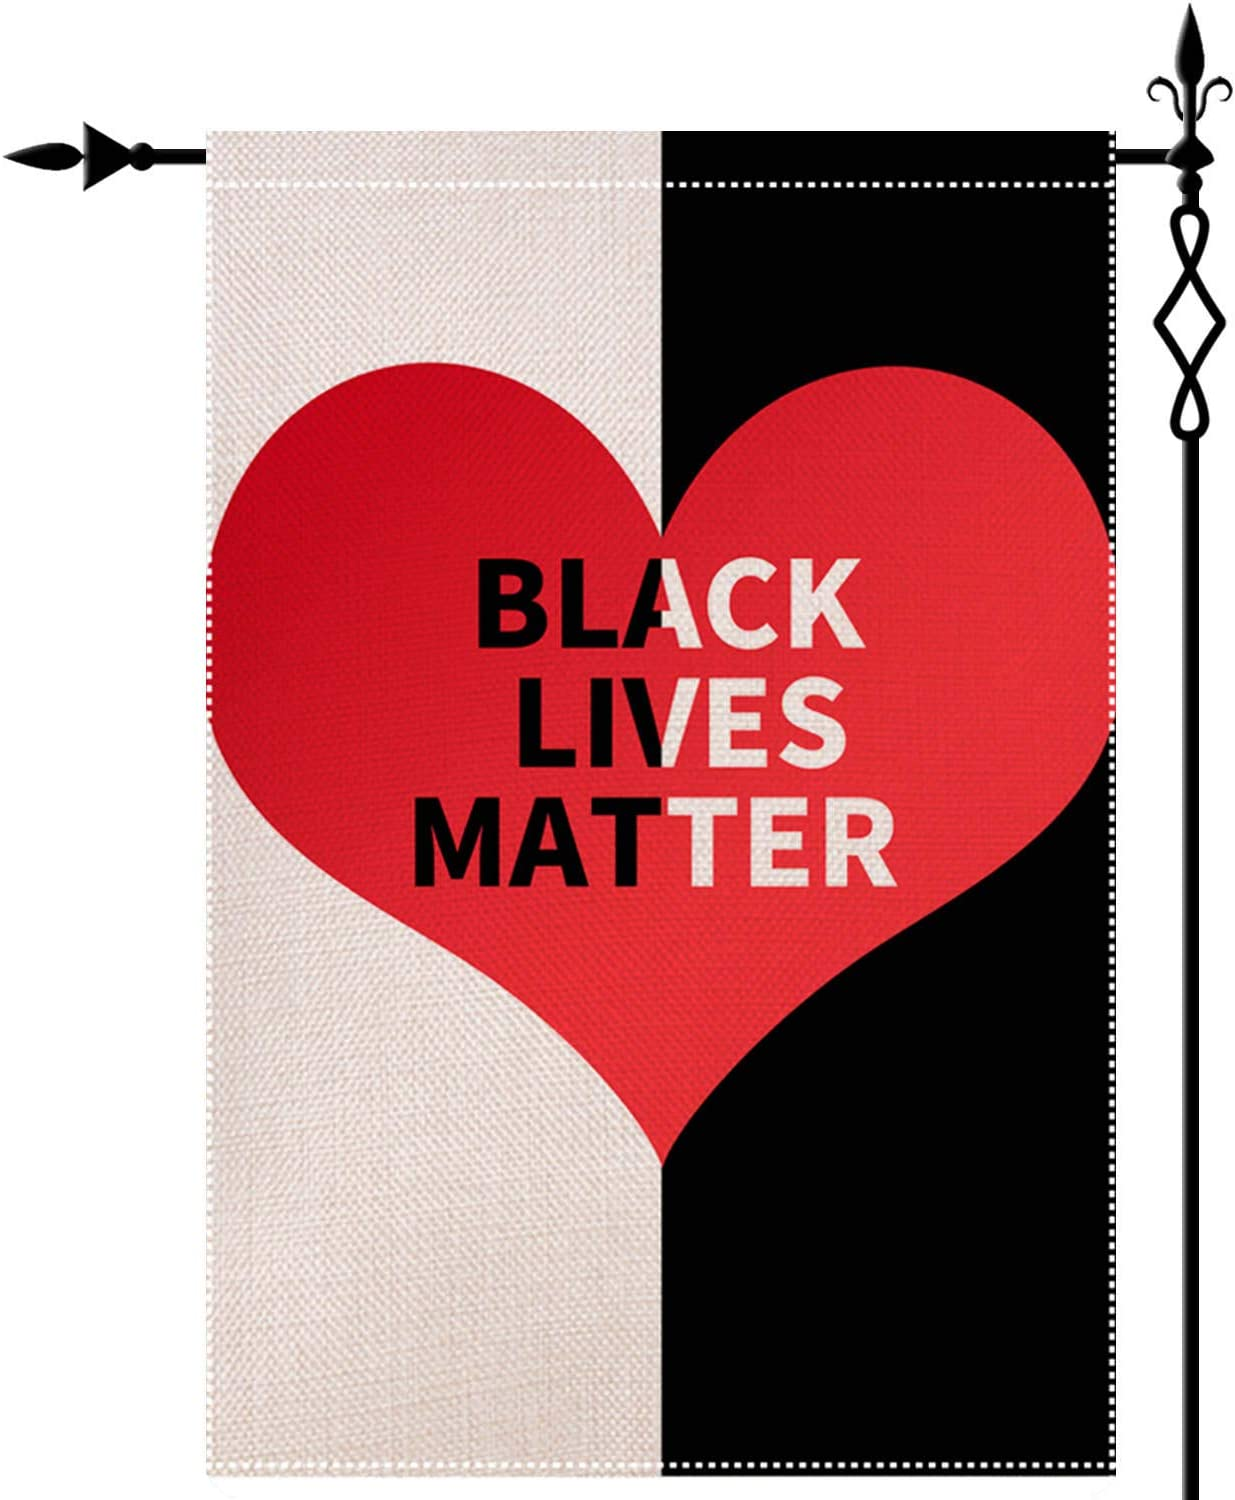 Black Lives Matter Garden Flag Double-Sided Lawn Decoration Gift House Garden Yard Banner Revolution Movement Equality Social, Thick Fabric, Small Flag Only